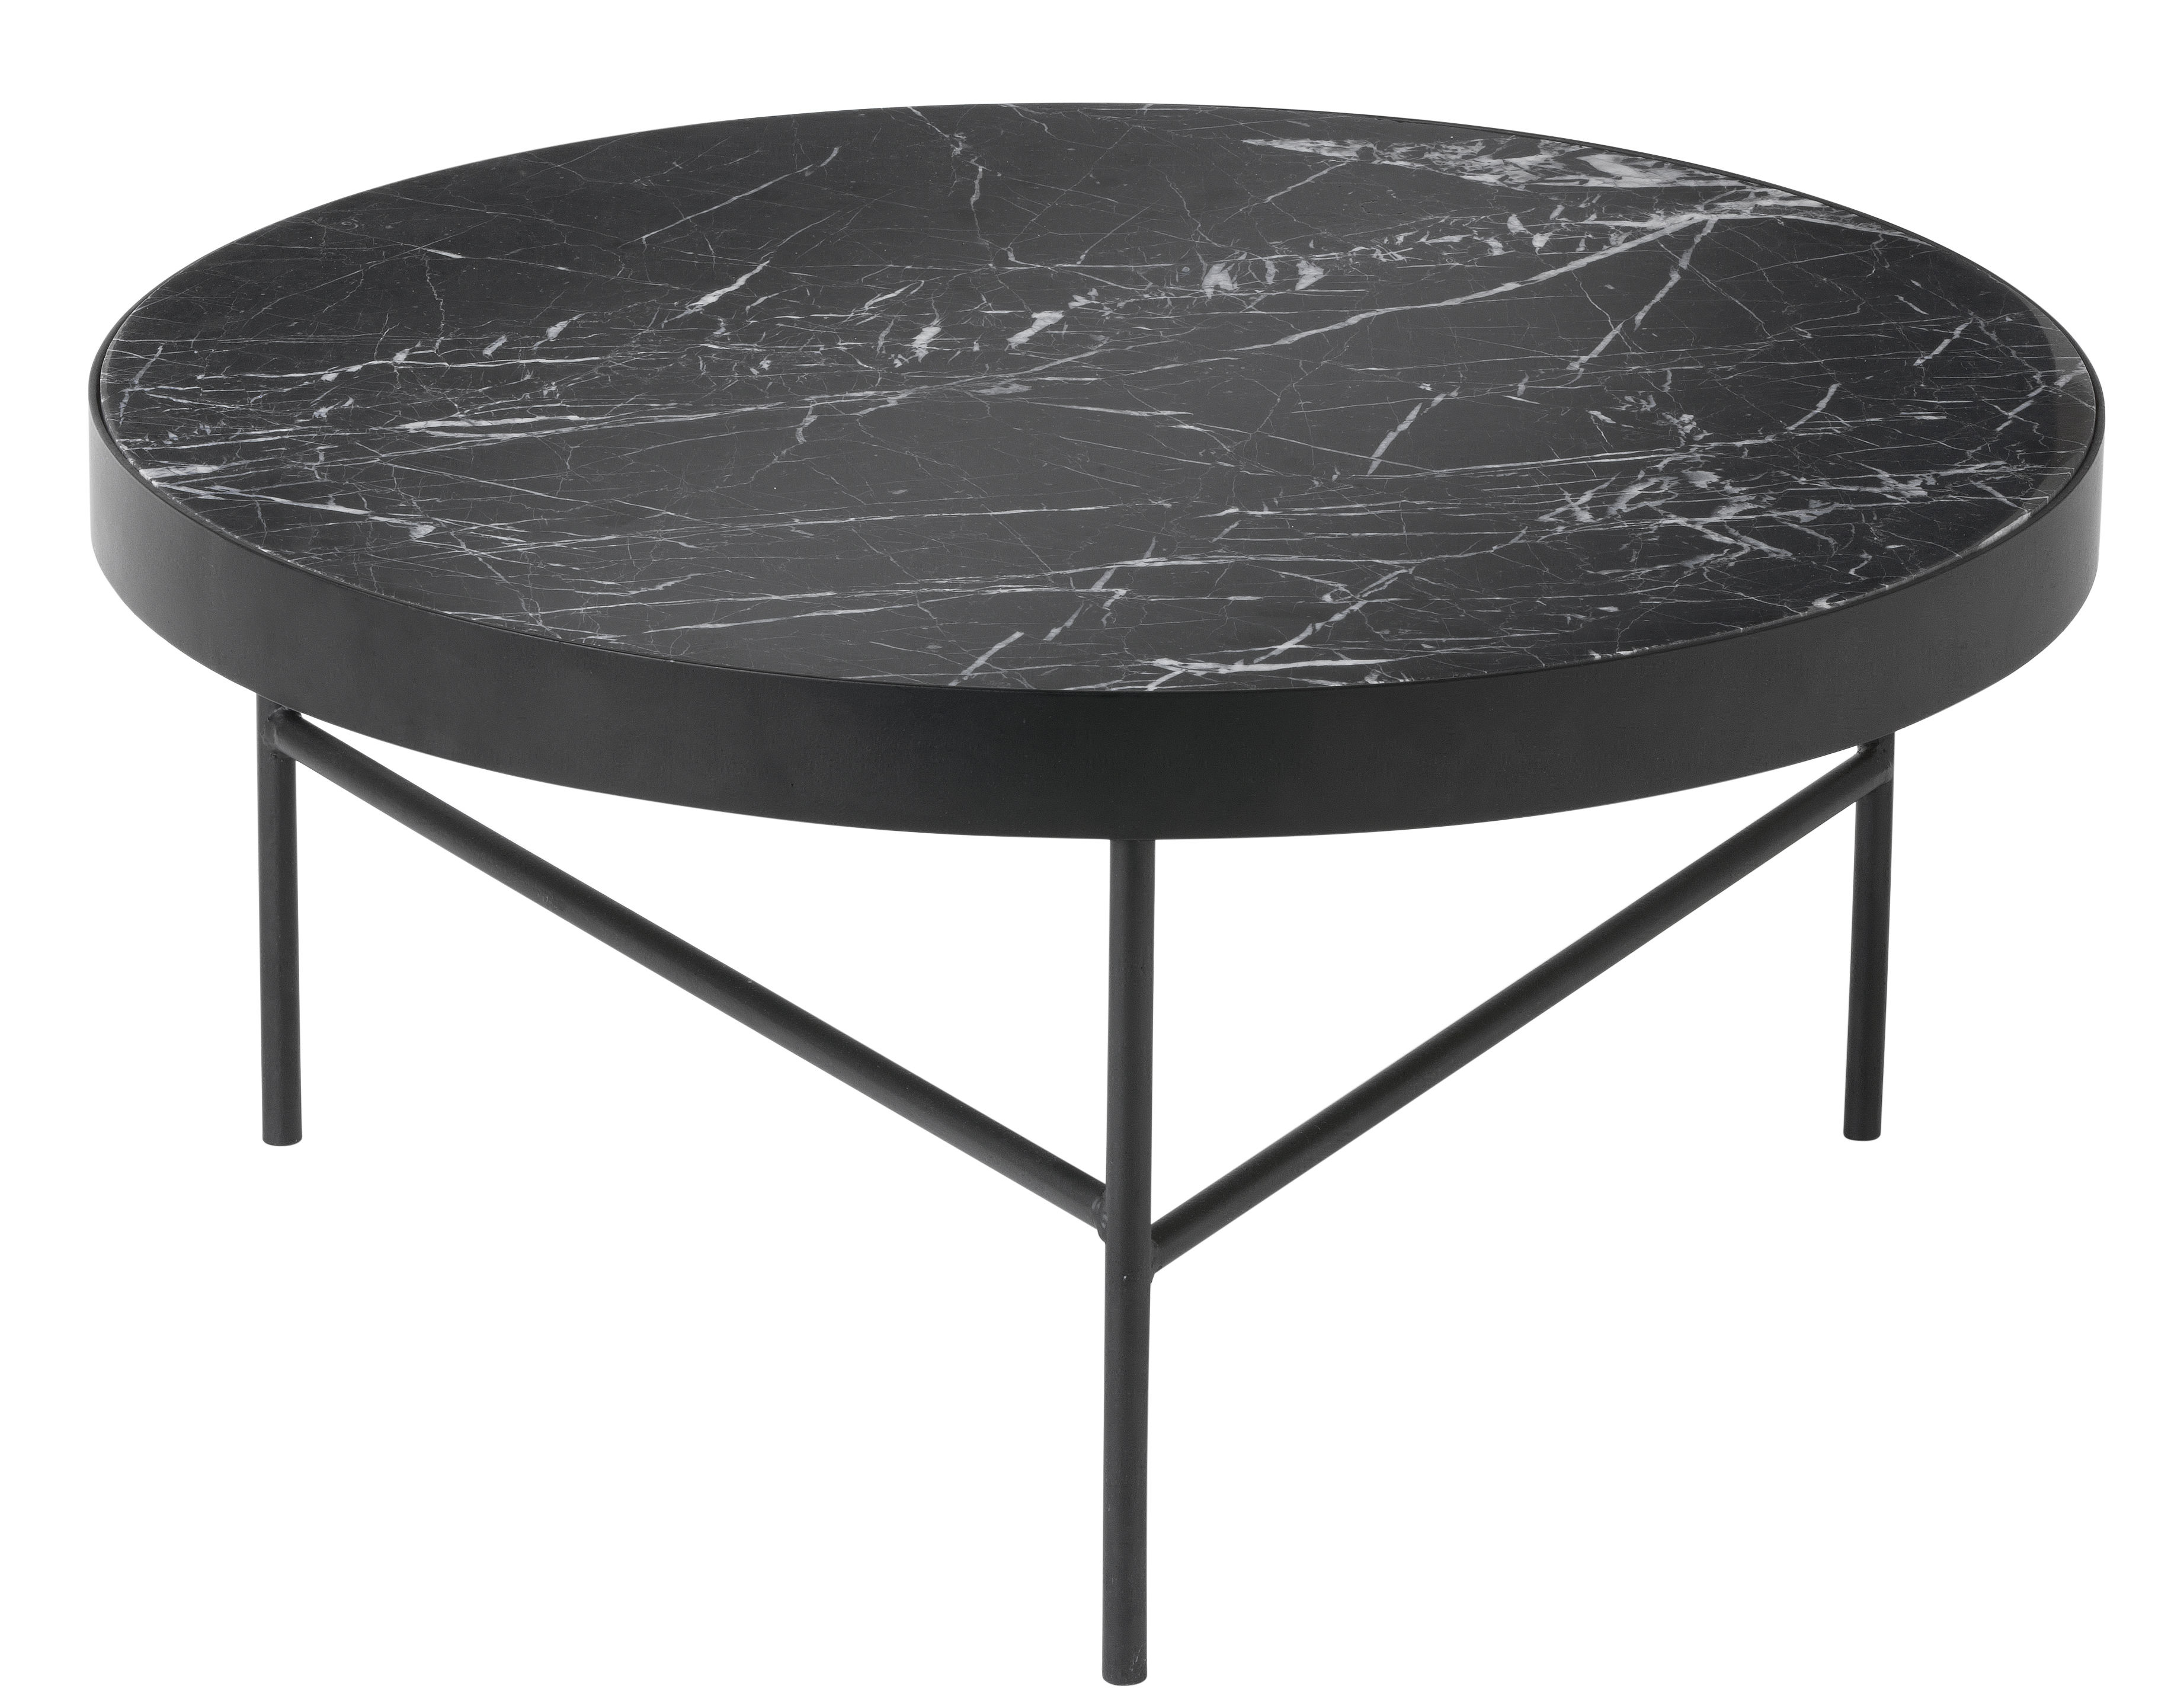 Marble Large Coffee Table ø 705 X H 35 Cm Black By Ferm Living